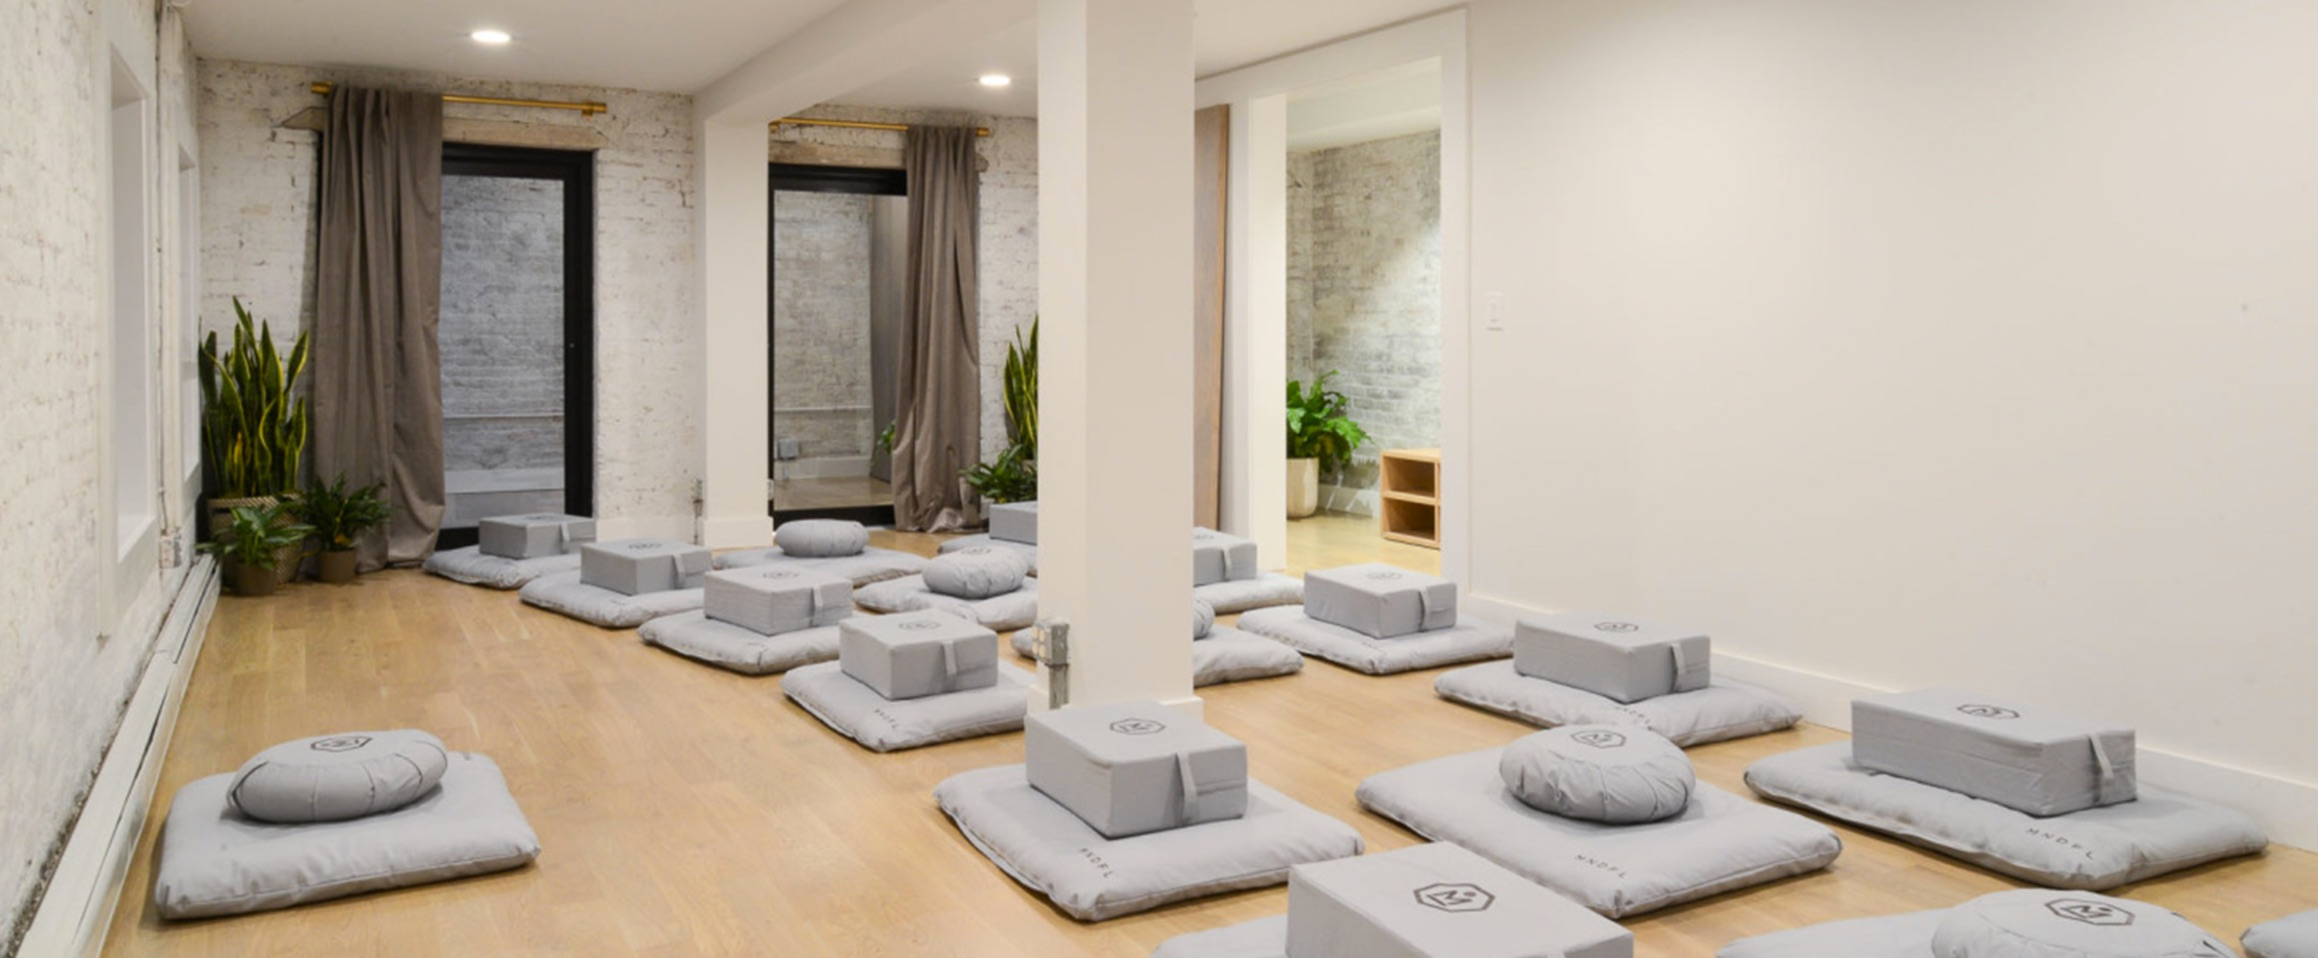 group meditation room at mndfl from their website. ^ that's my usual cushion // greenwich village location